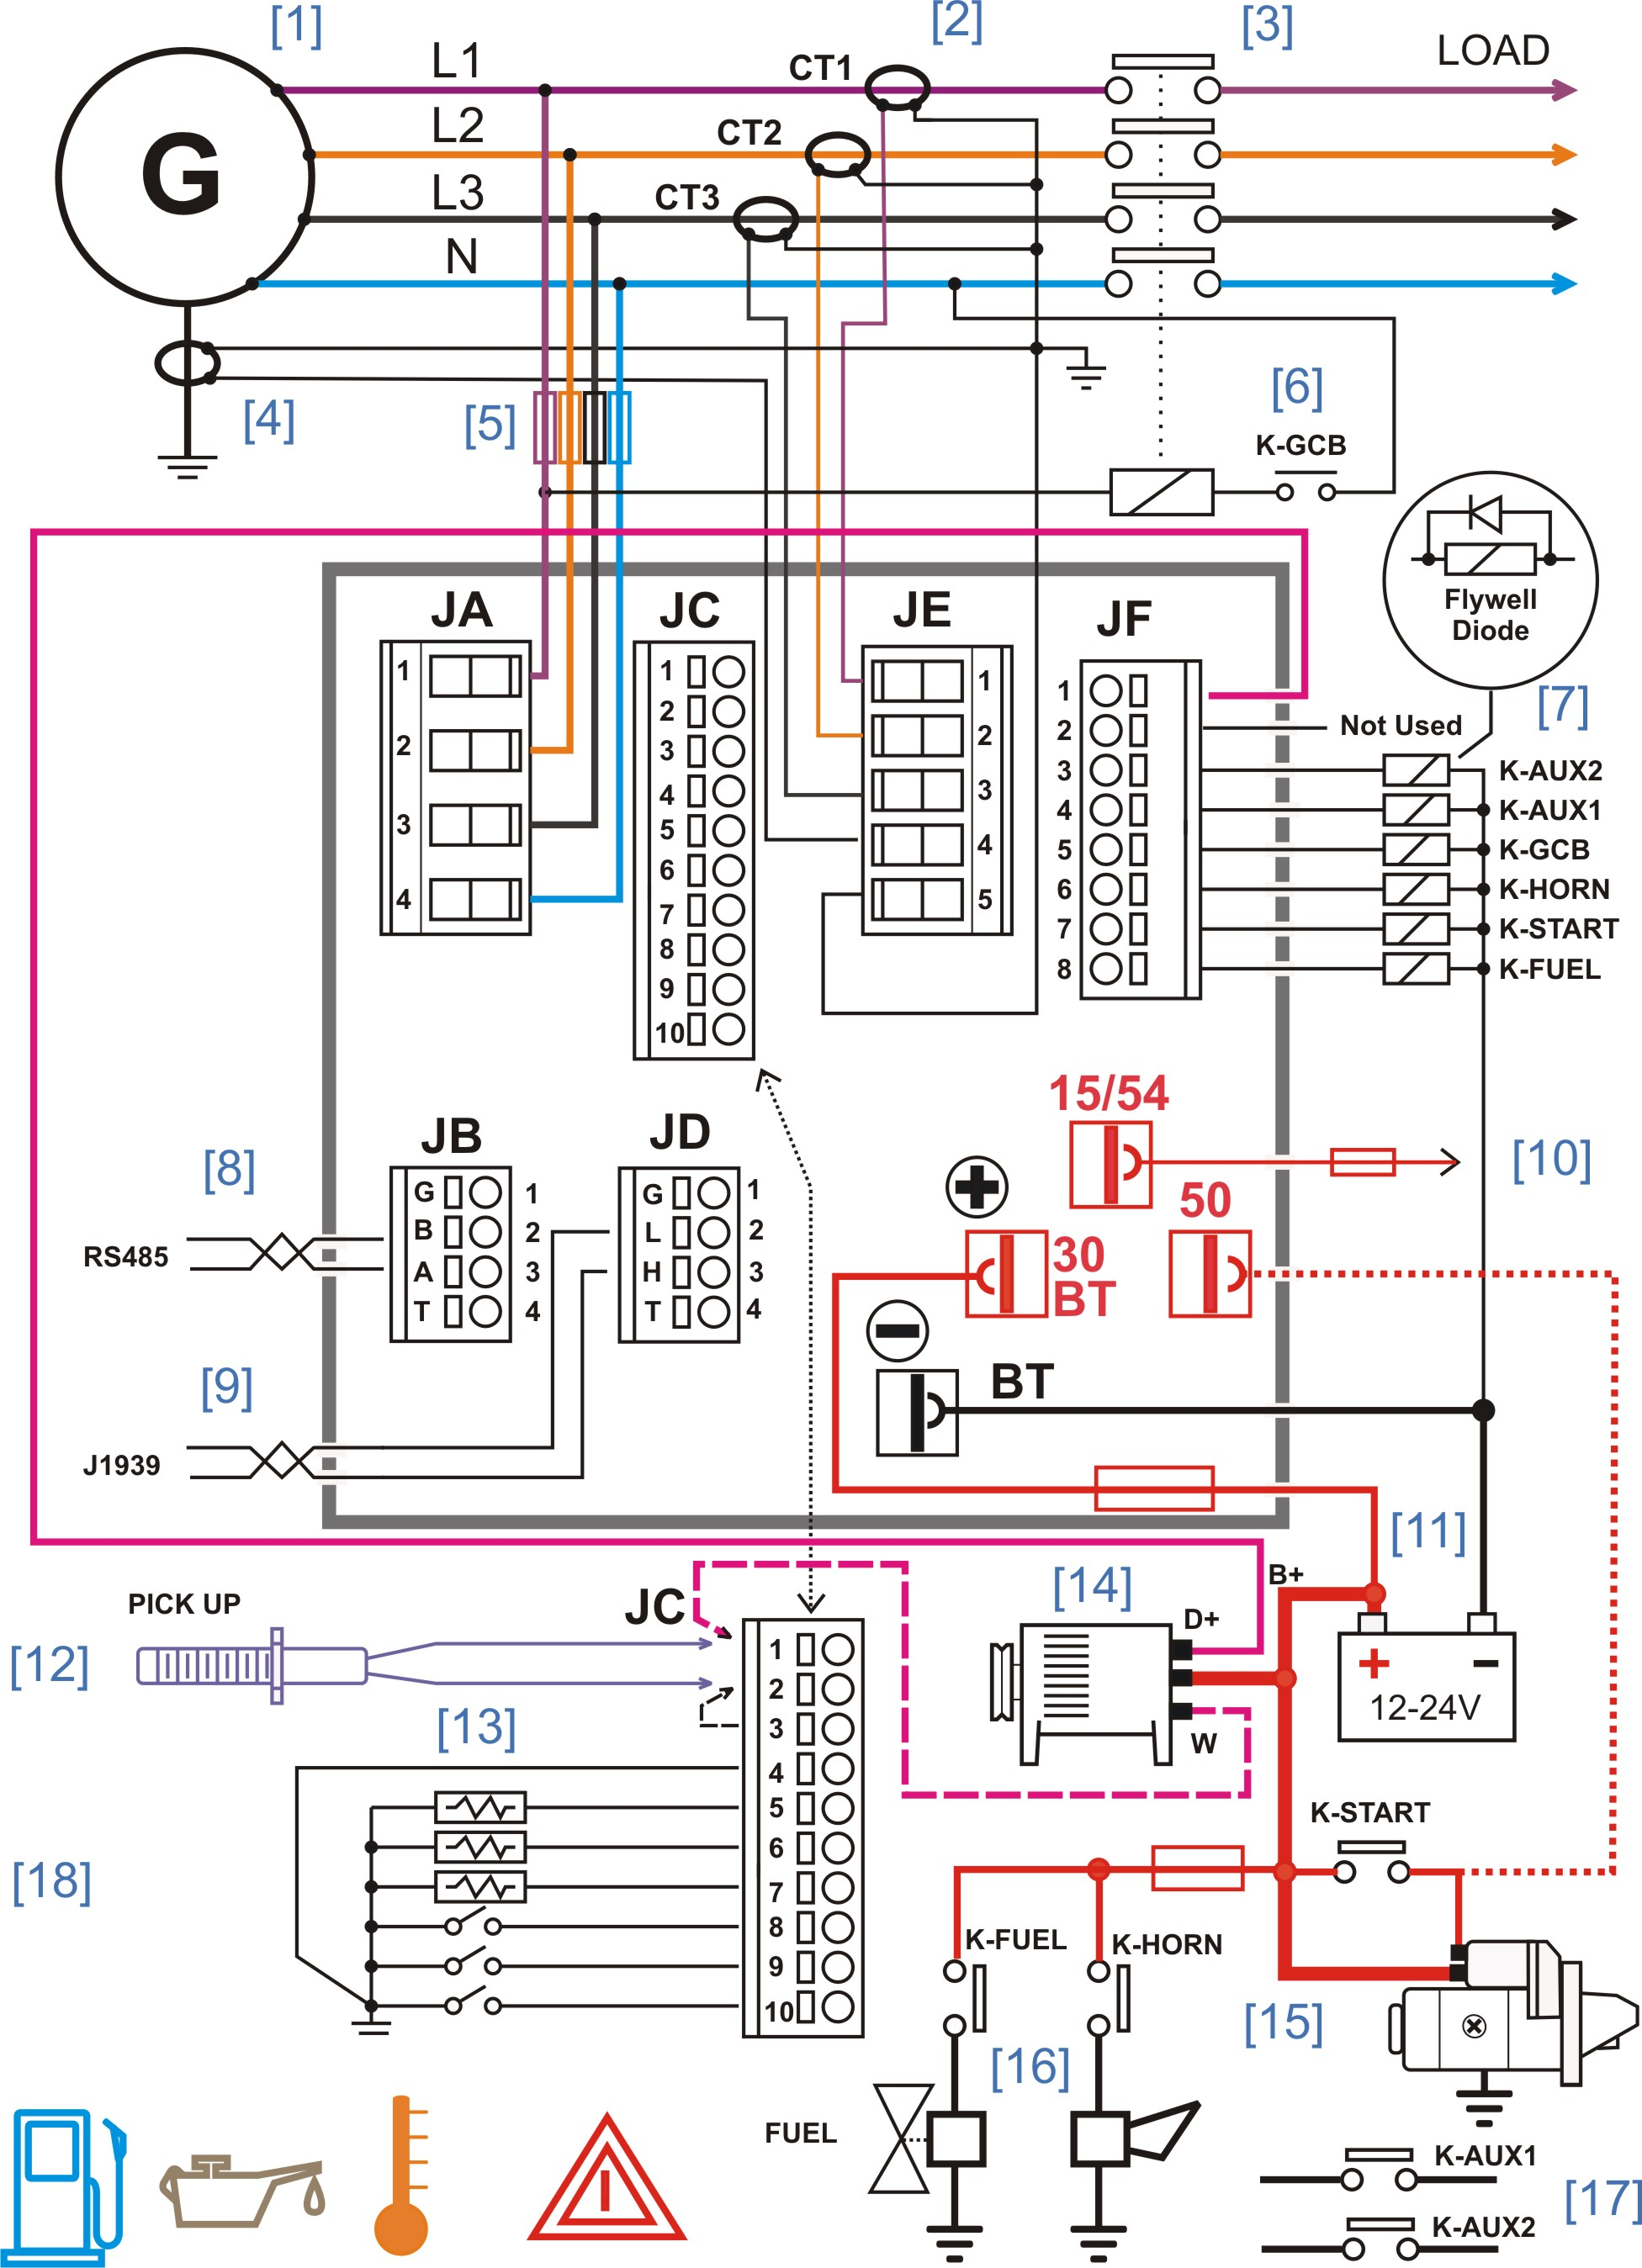 generator controller wiring diagram genset controller rh bernini design com Control Panel Wiring Diagram Electrical Wiring Diagrams Motor Controls